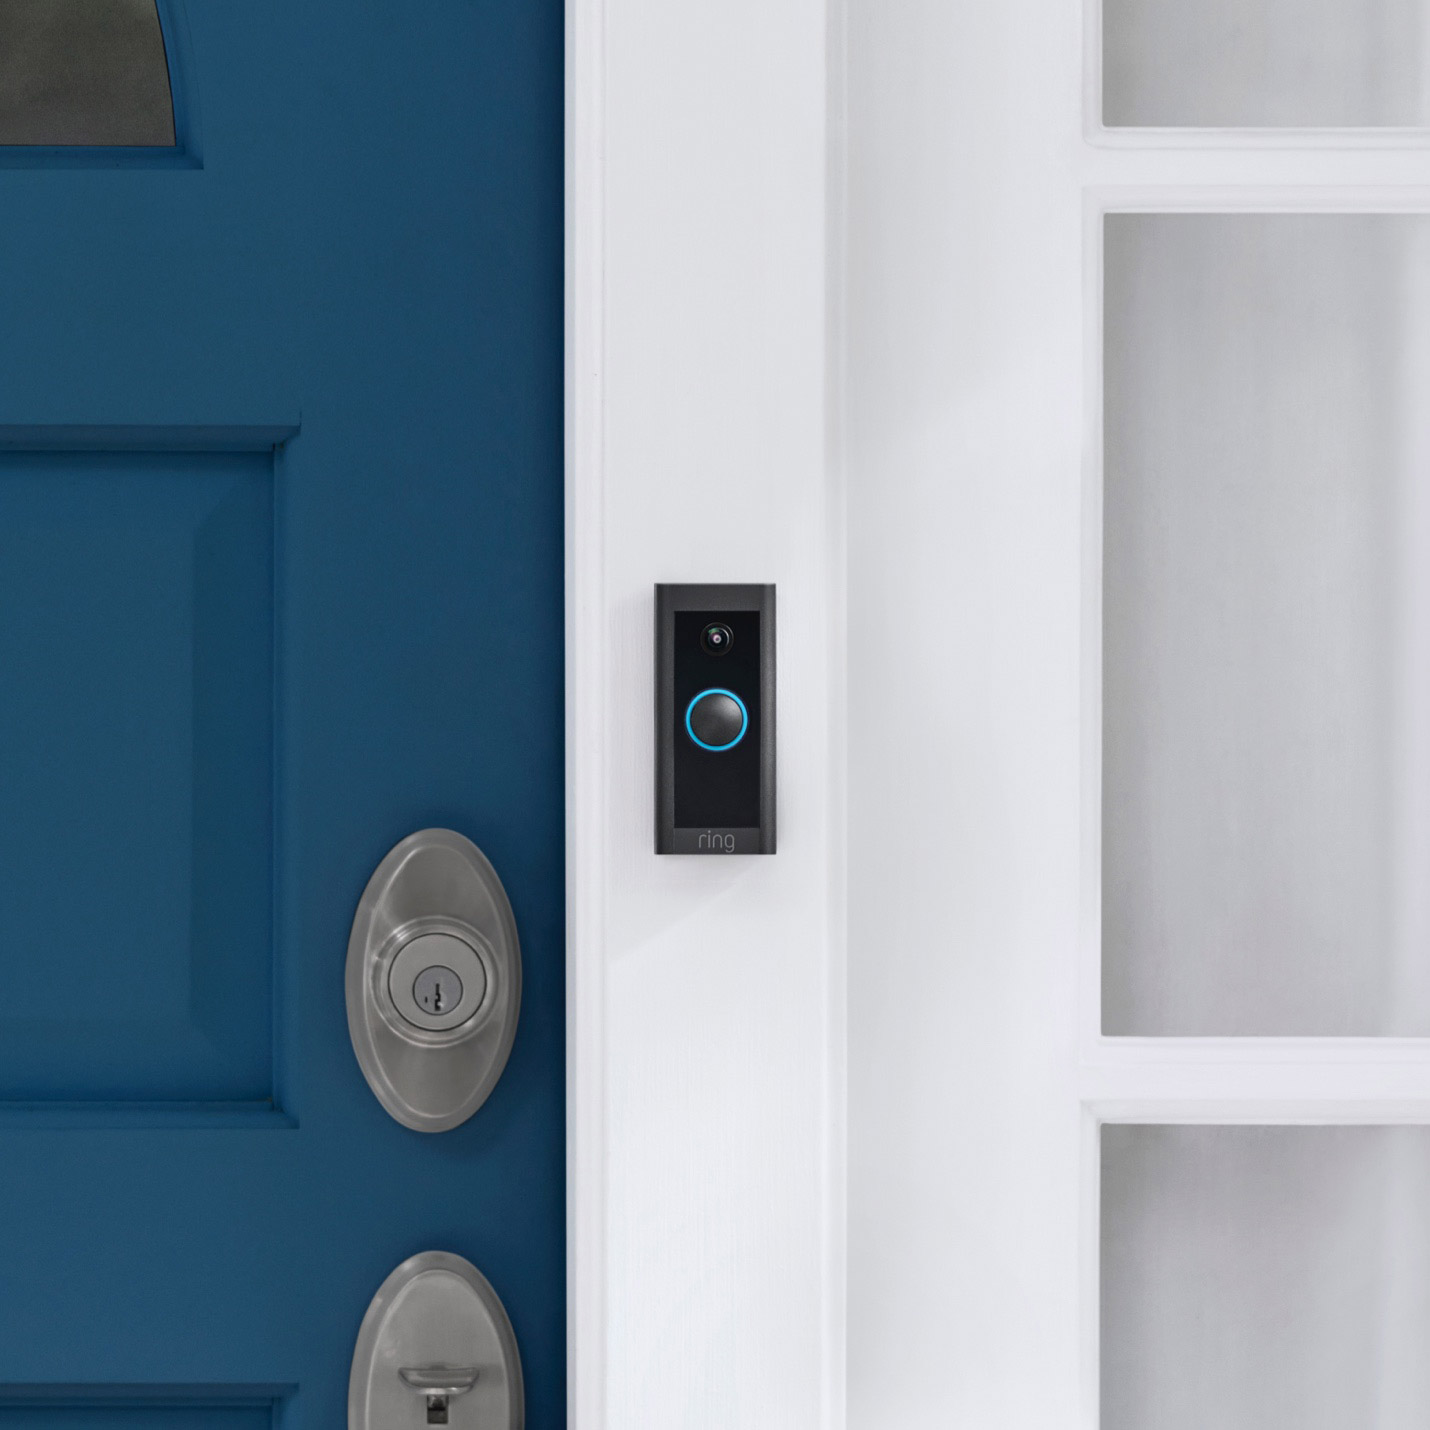 Lifestyle Image 4 Ring Launches Sub $120 Video Doorbell